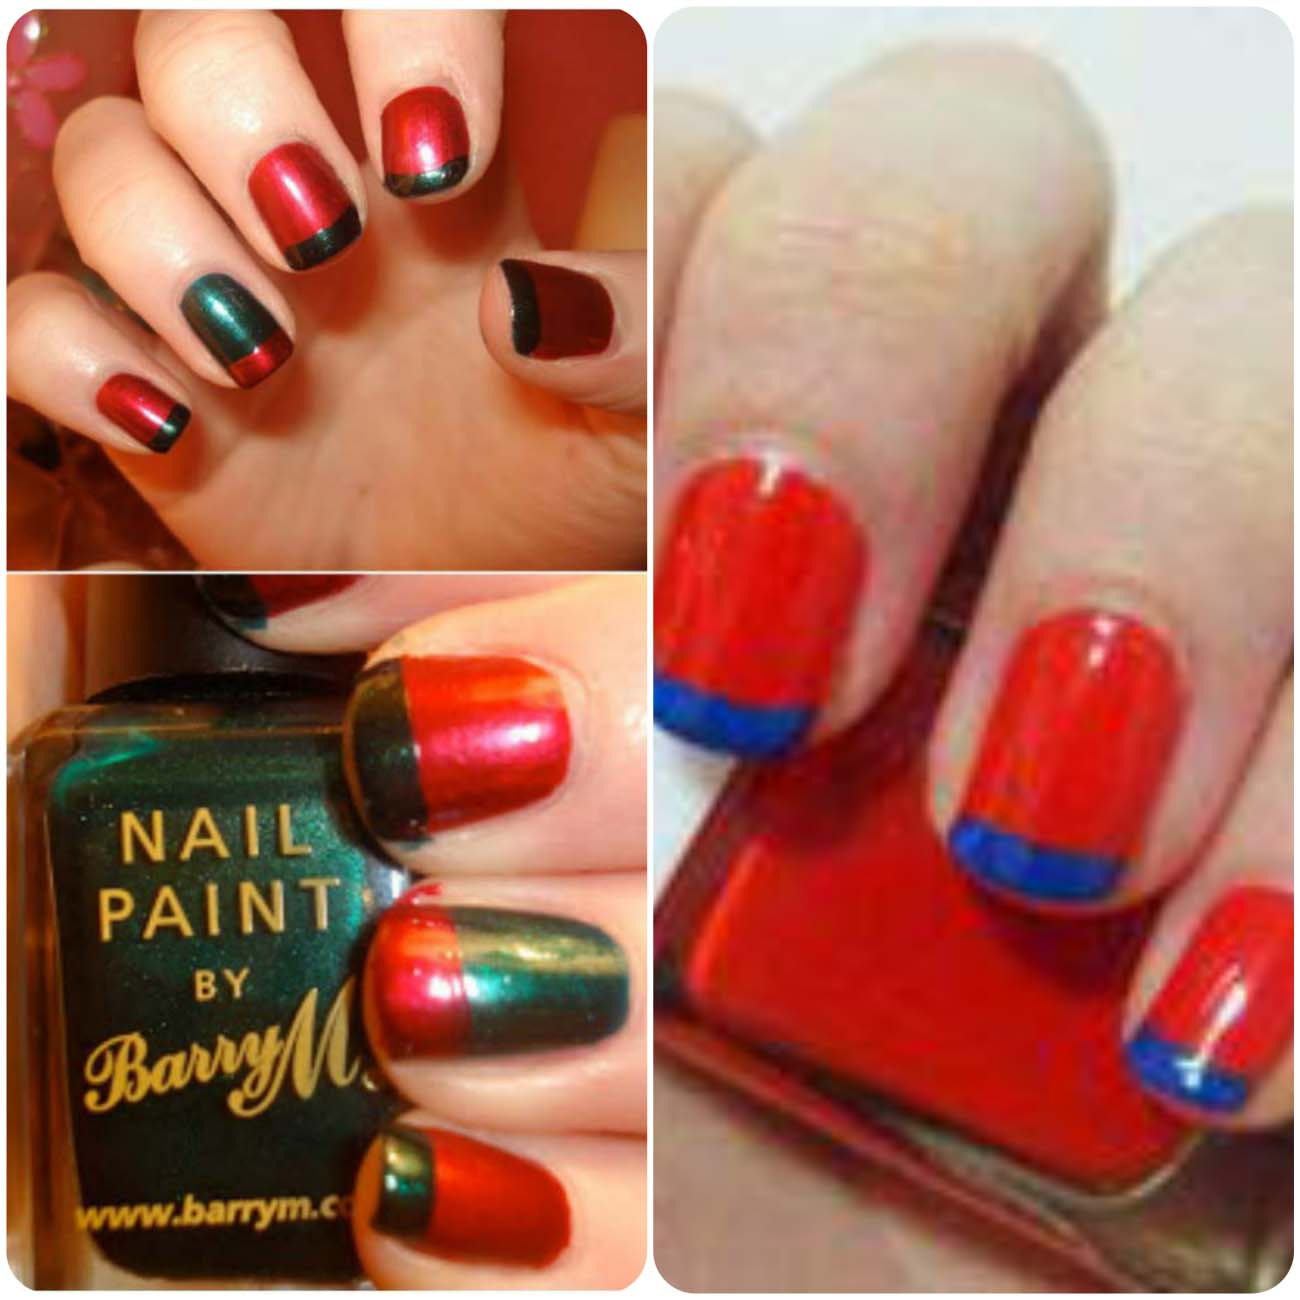 Charistmas Winter Nail art designs (27)_Fotor_Collage